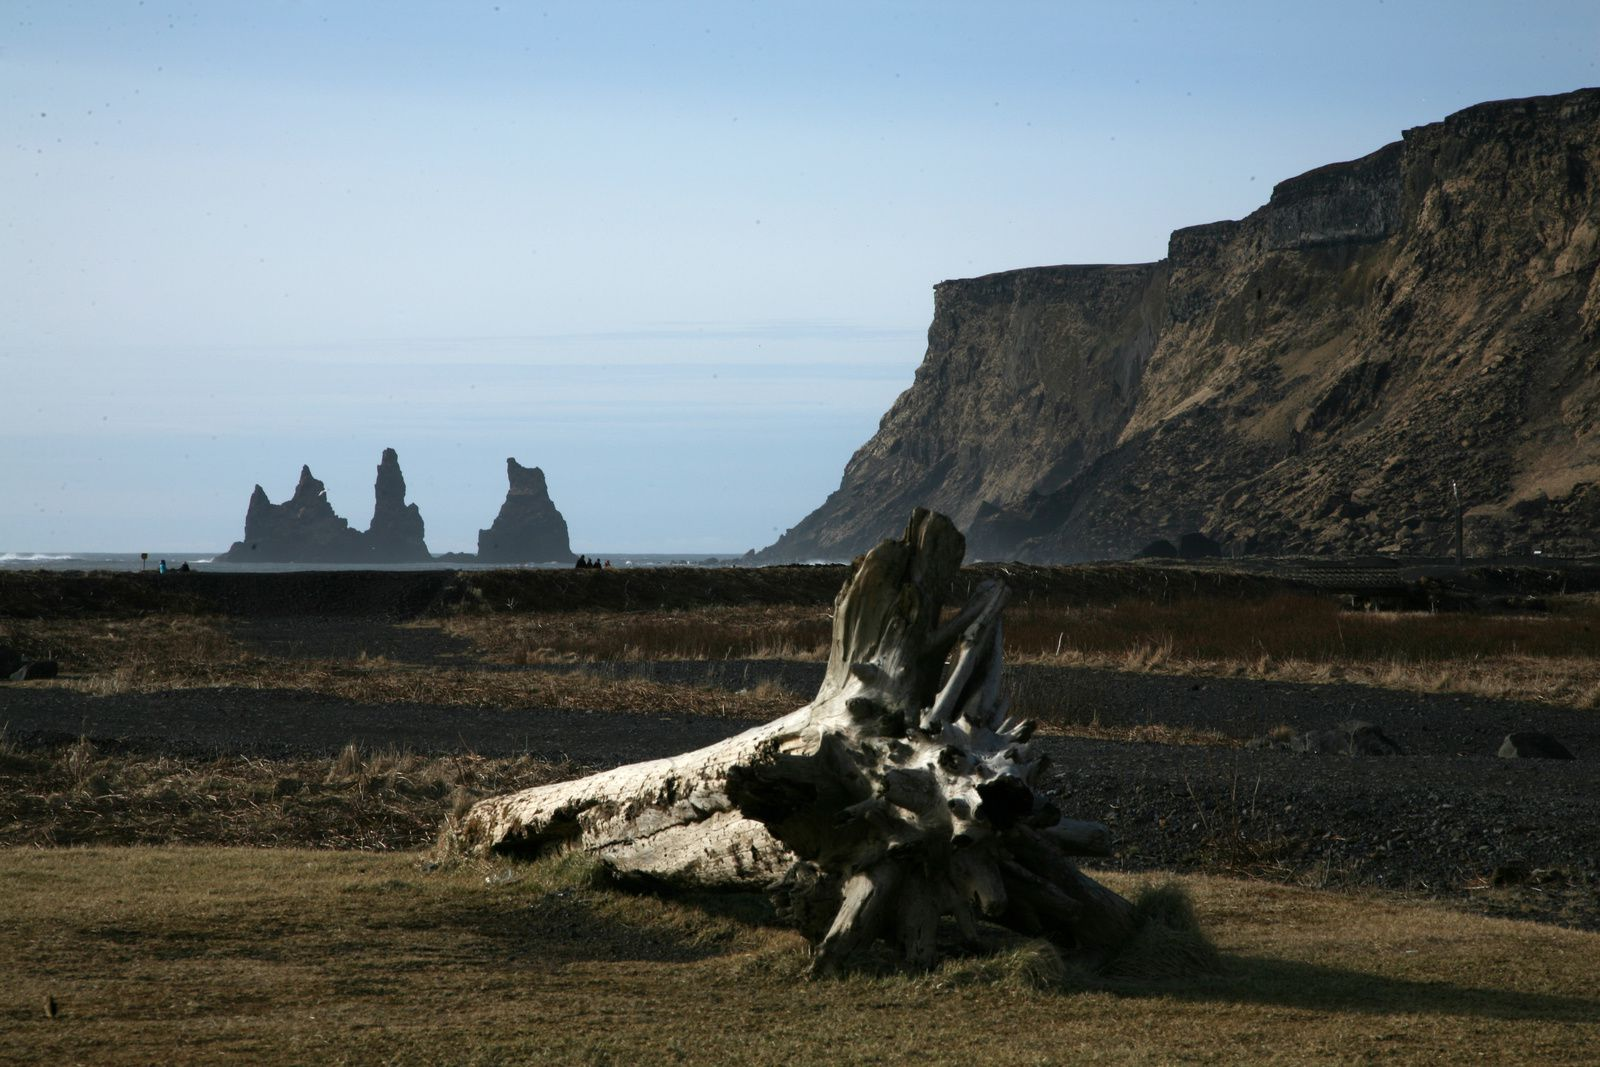 Reynisfjall and Reynisdrangar seen from Dyrhólaey - photo © 2015 Bernard Duyck